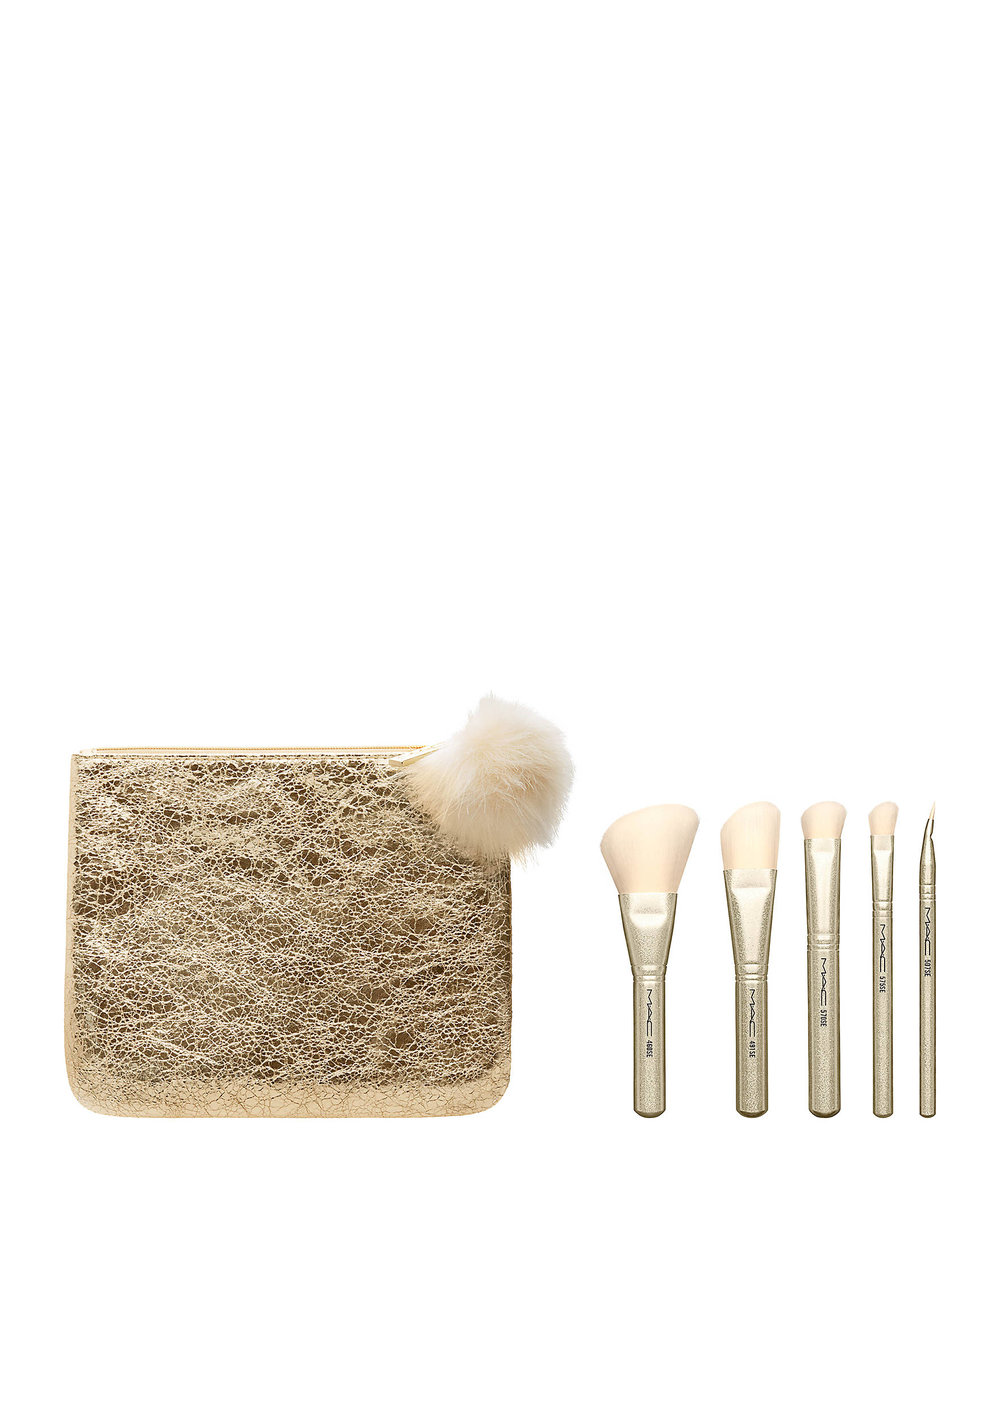 Five brushes (powder/cheek, foundation, large eyeshadow, small eyeshadow and liner)in a foiled gold bag that doubles as a clutch. MAC SnowBall Brush Kit. $49.50. Belk.